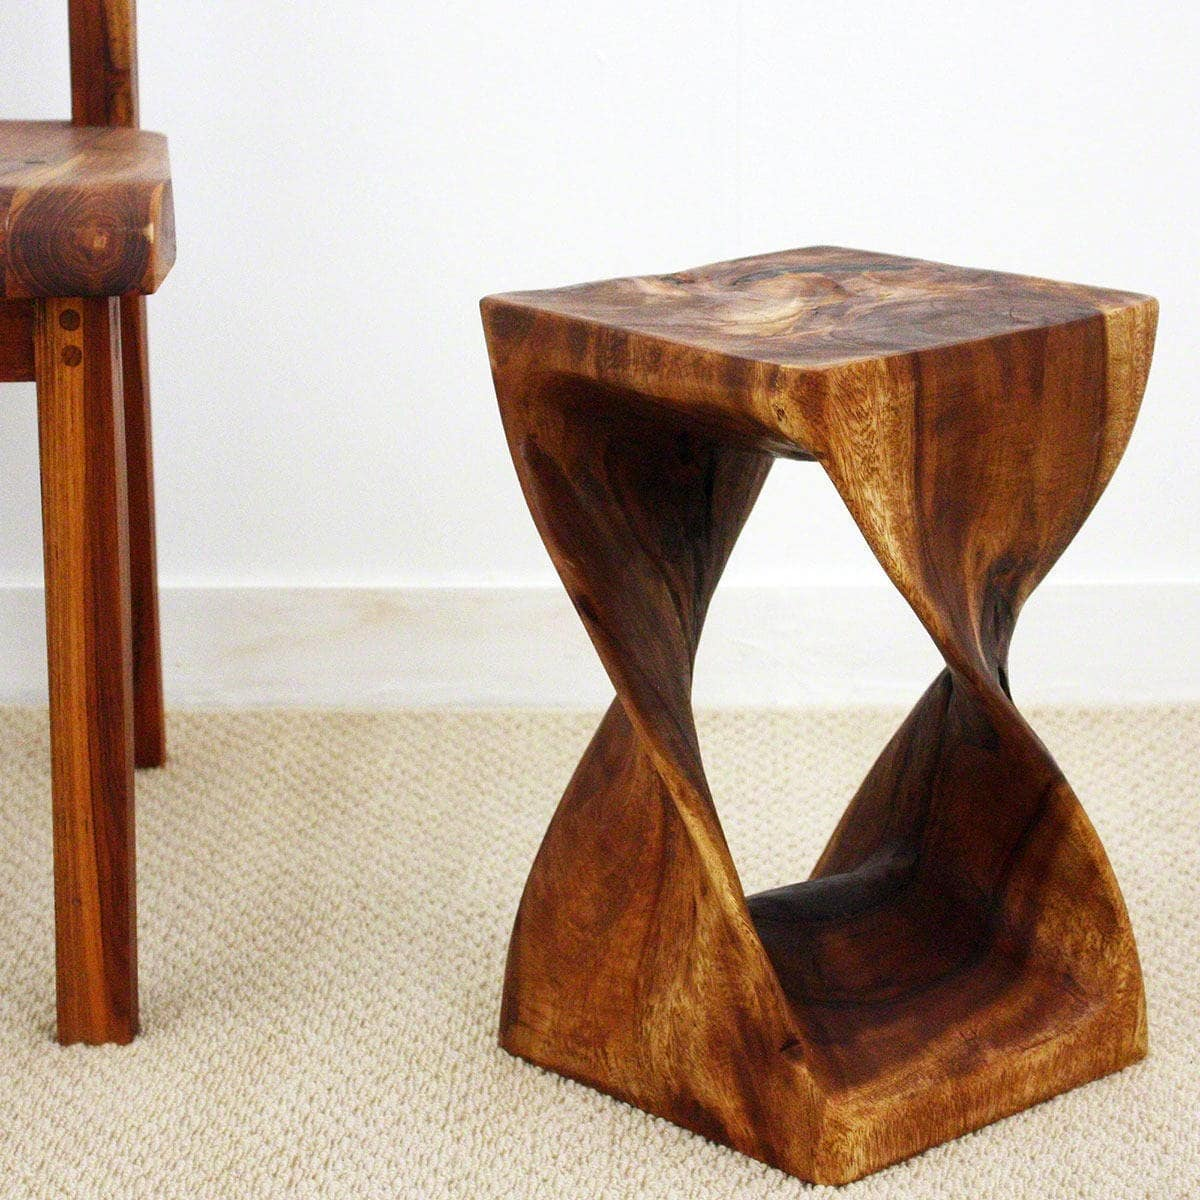 Haussmann 10 Inches Square x 16-inch Monkey Pod Wood Walnut Oil-finished Twist Stool (Thailand)